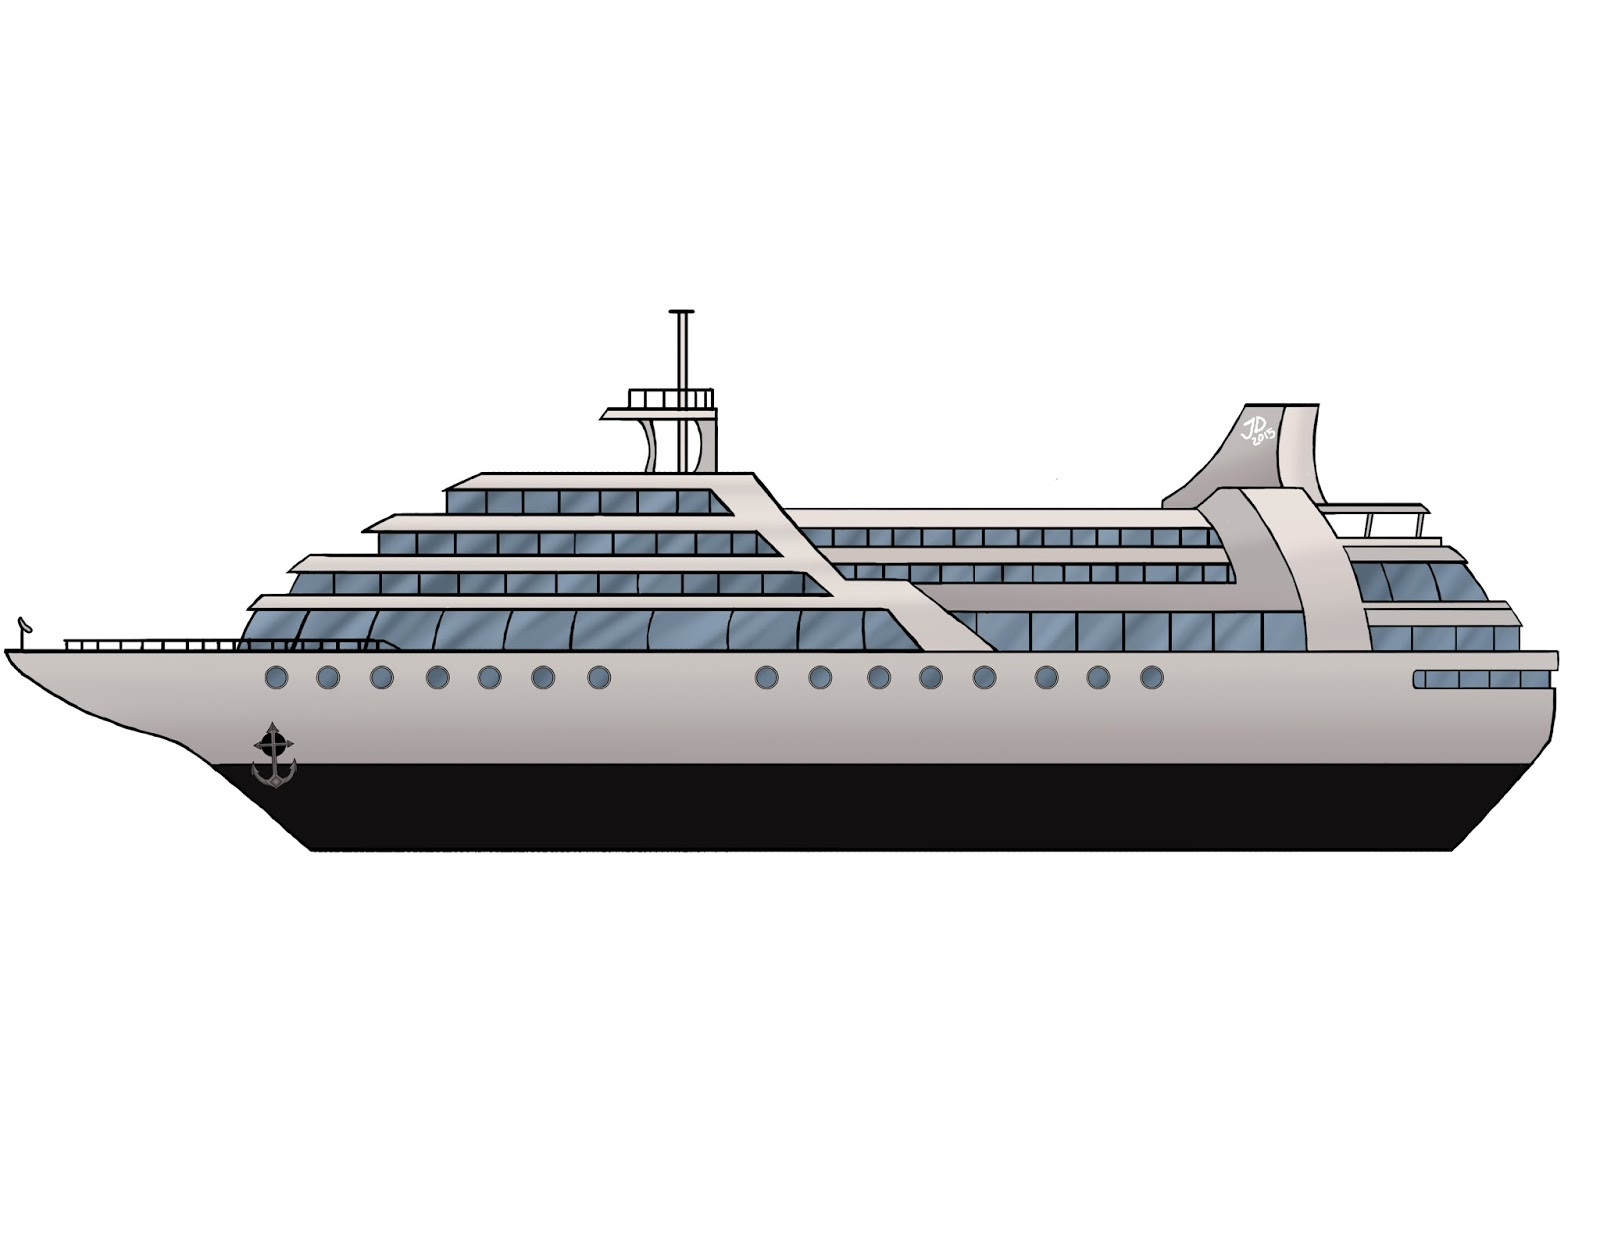 Ferry clipart cruise ship Cliparts Cruise and Others Animated